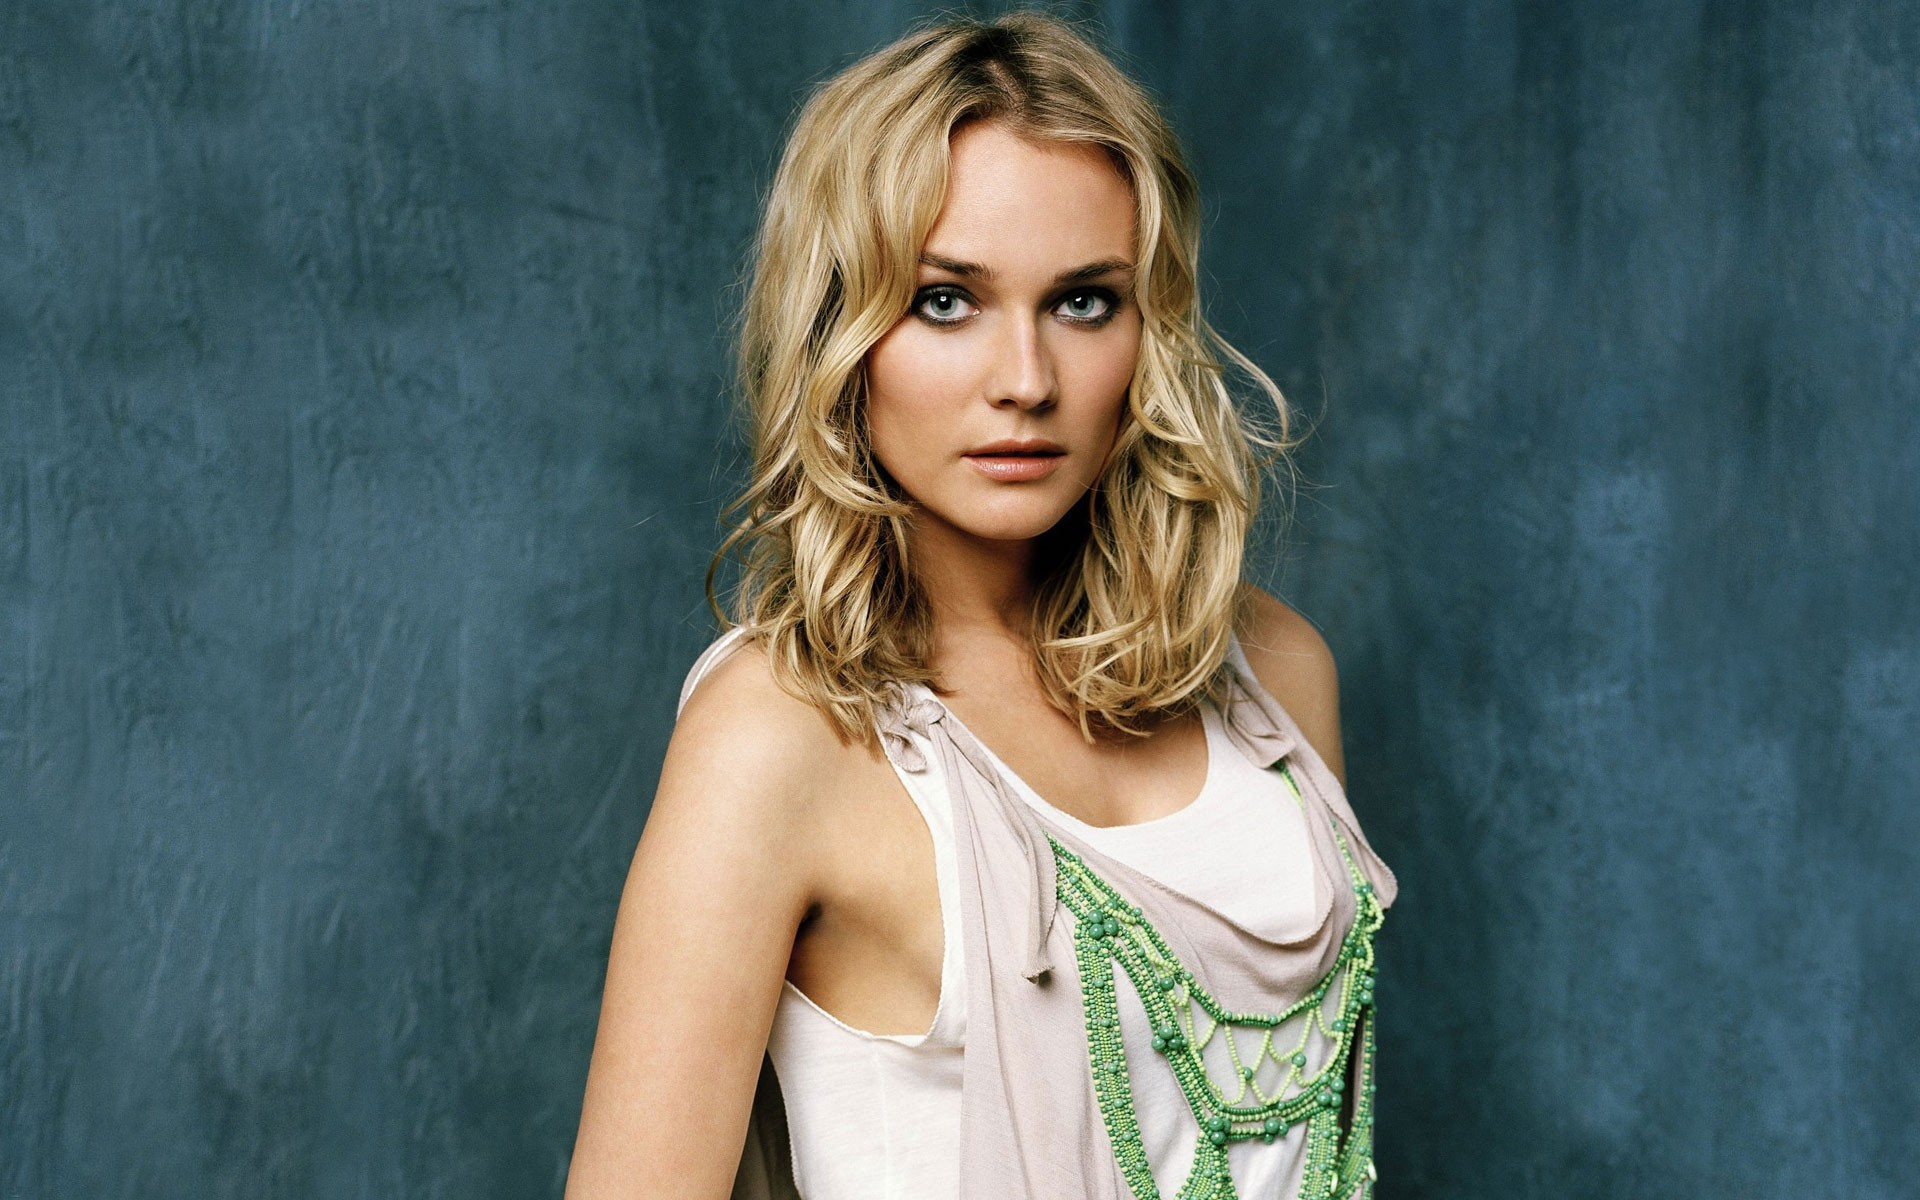 Latest Sports Cars 2014 Wallpaper Diane Kruger Wallpapers Hd Wallpapers Id 8318